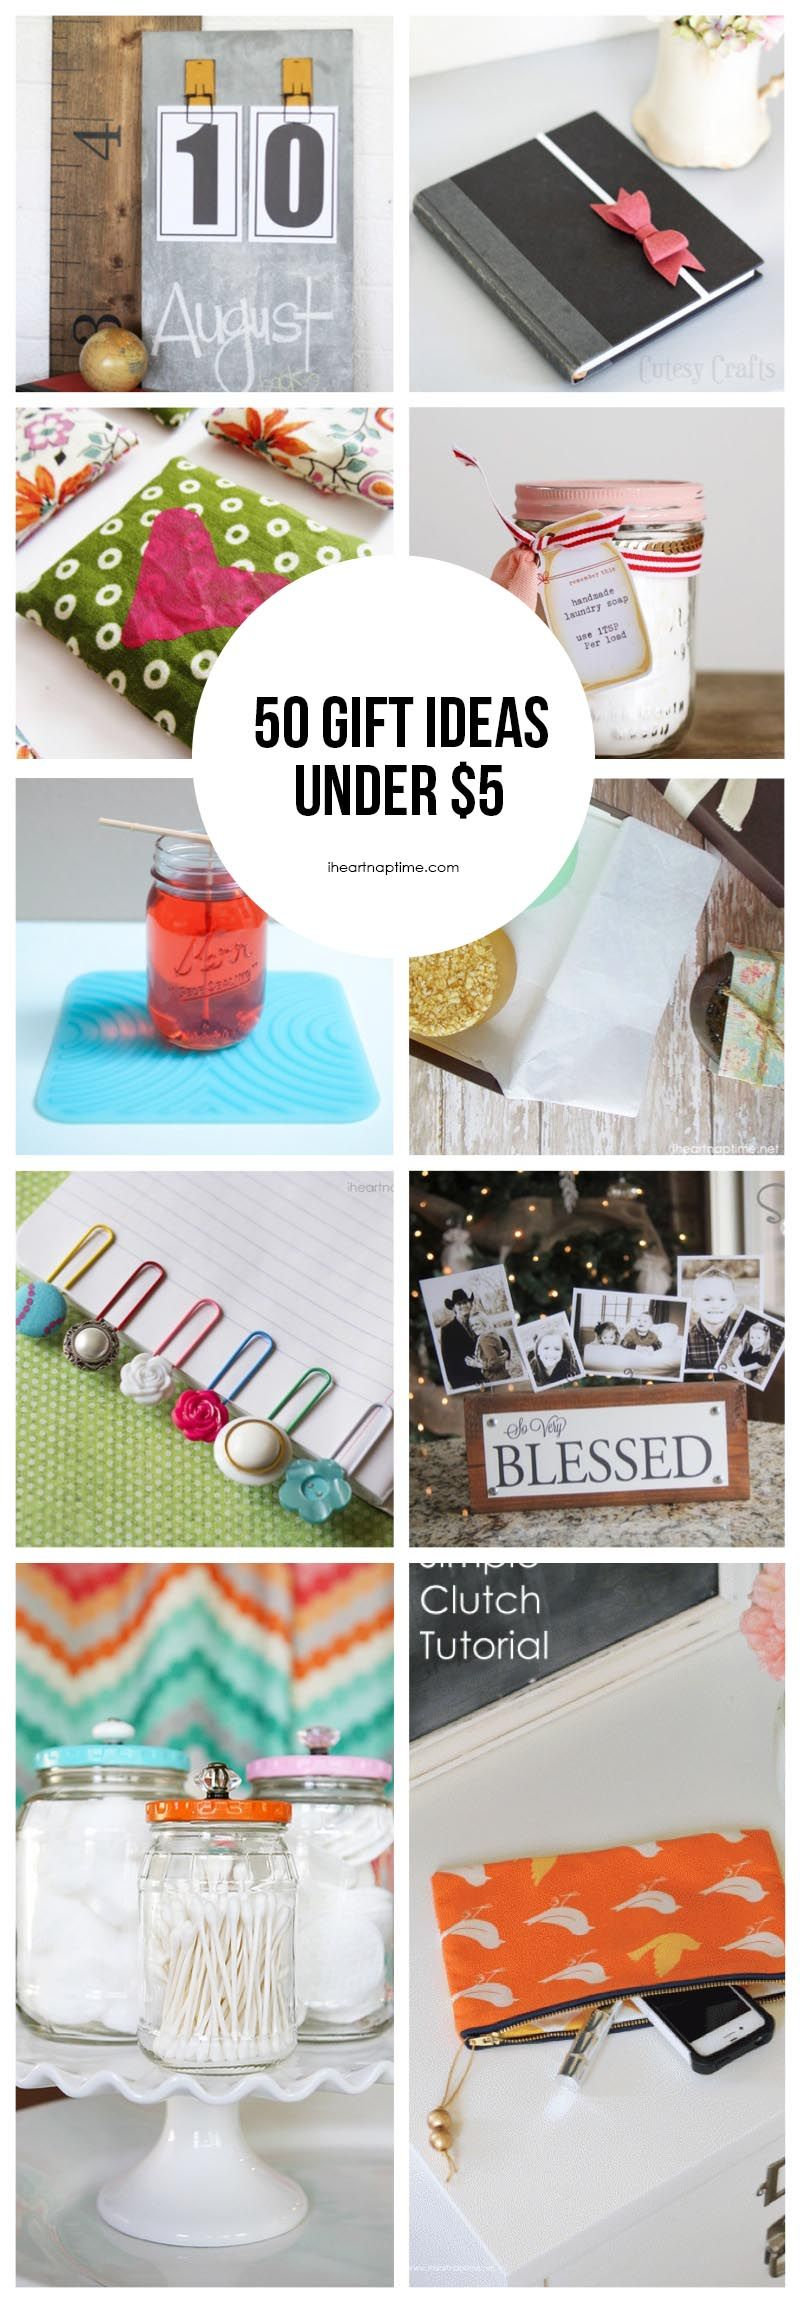 50 Homemade Gift Ideas To Make For Under 5 Diy Gifts